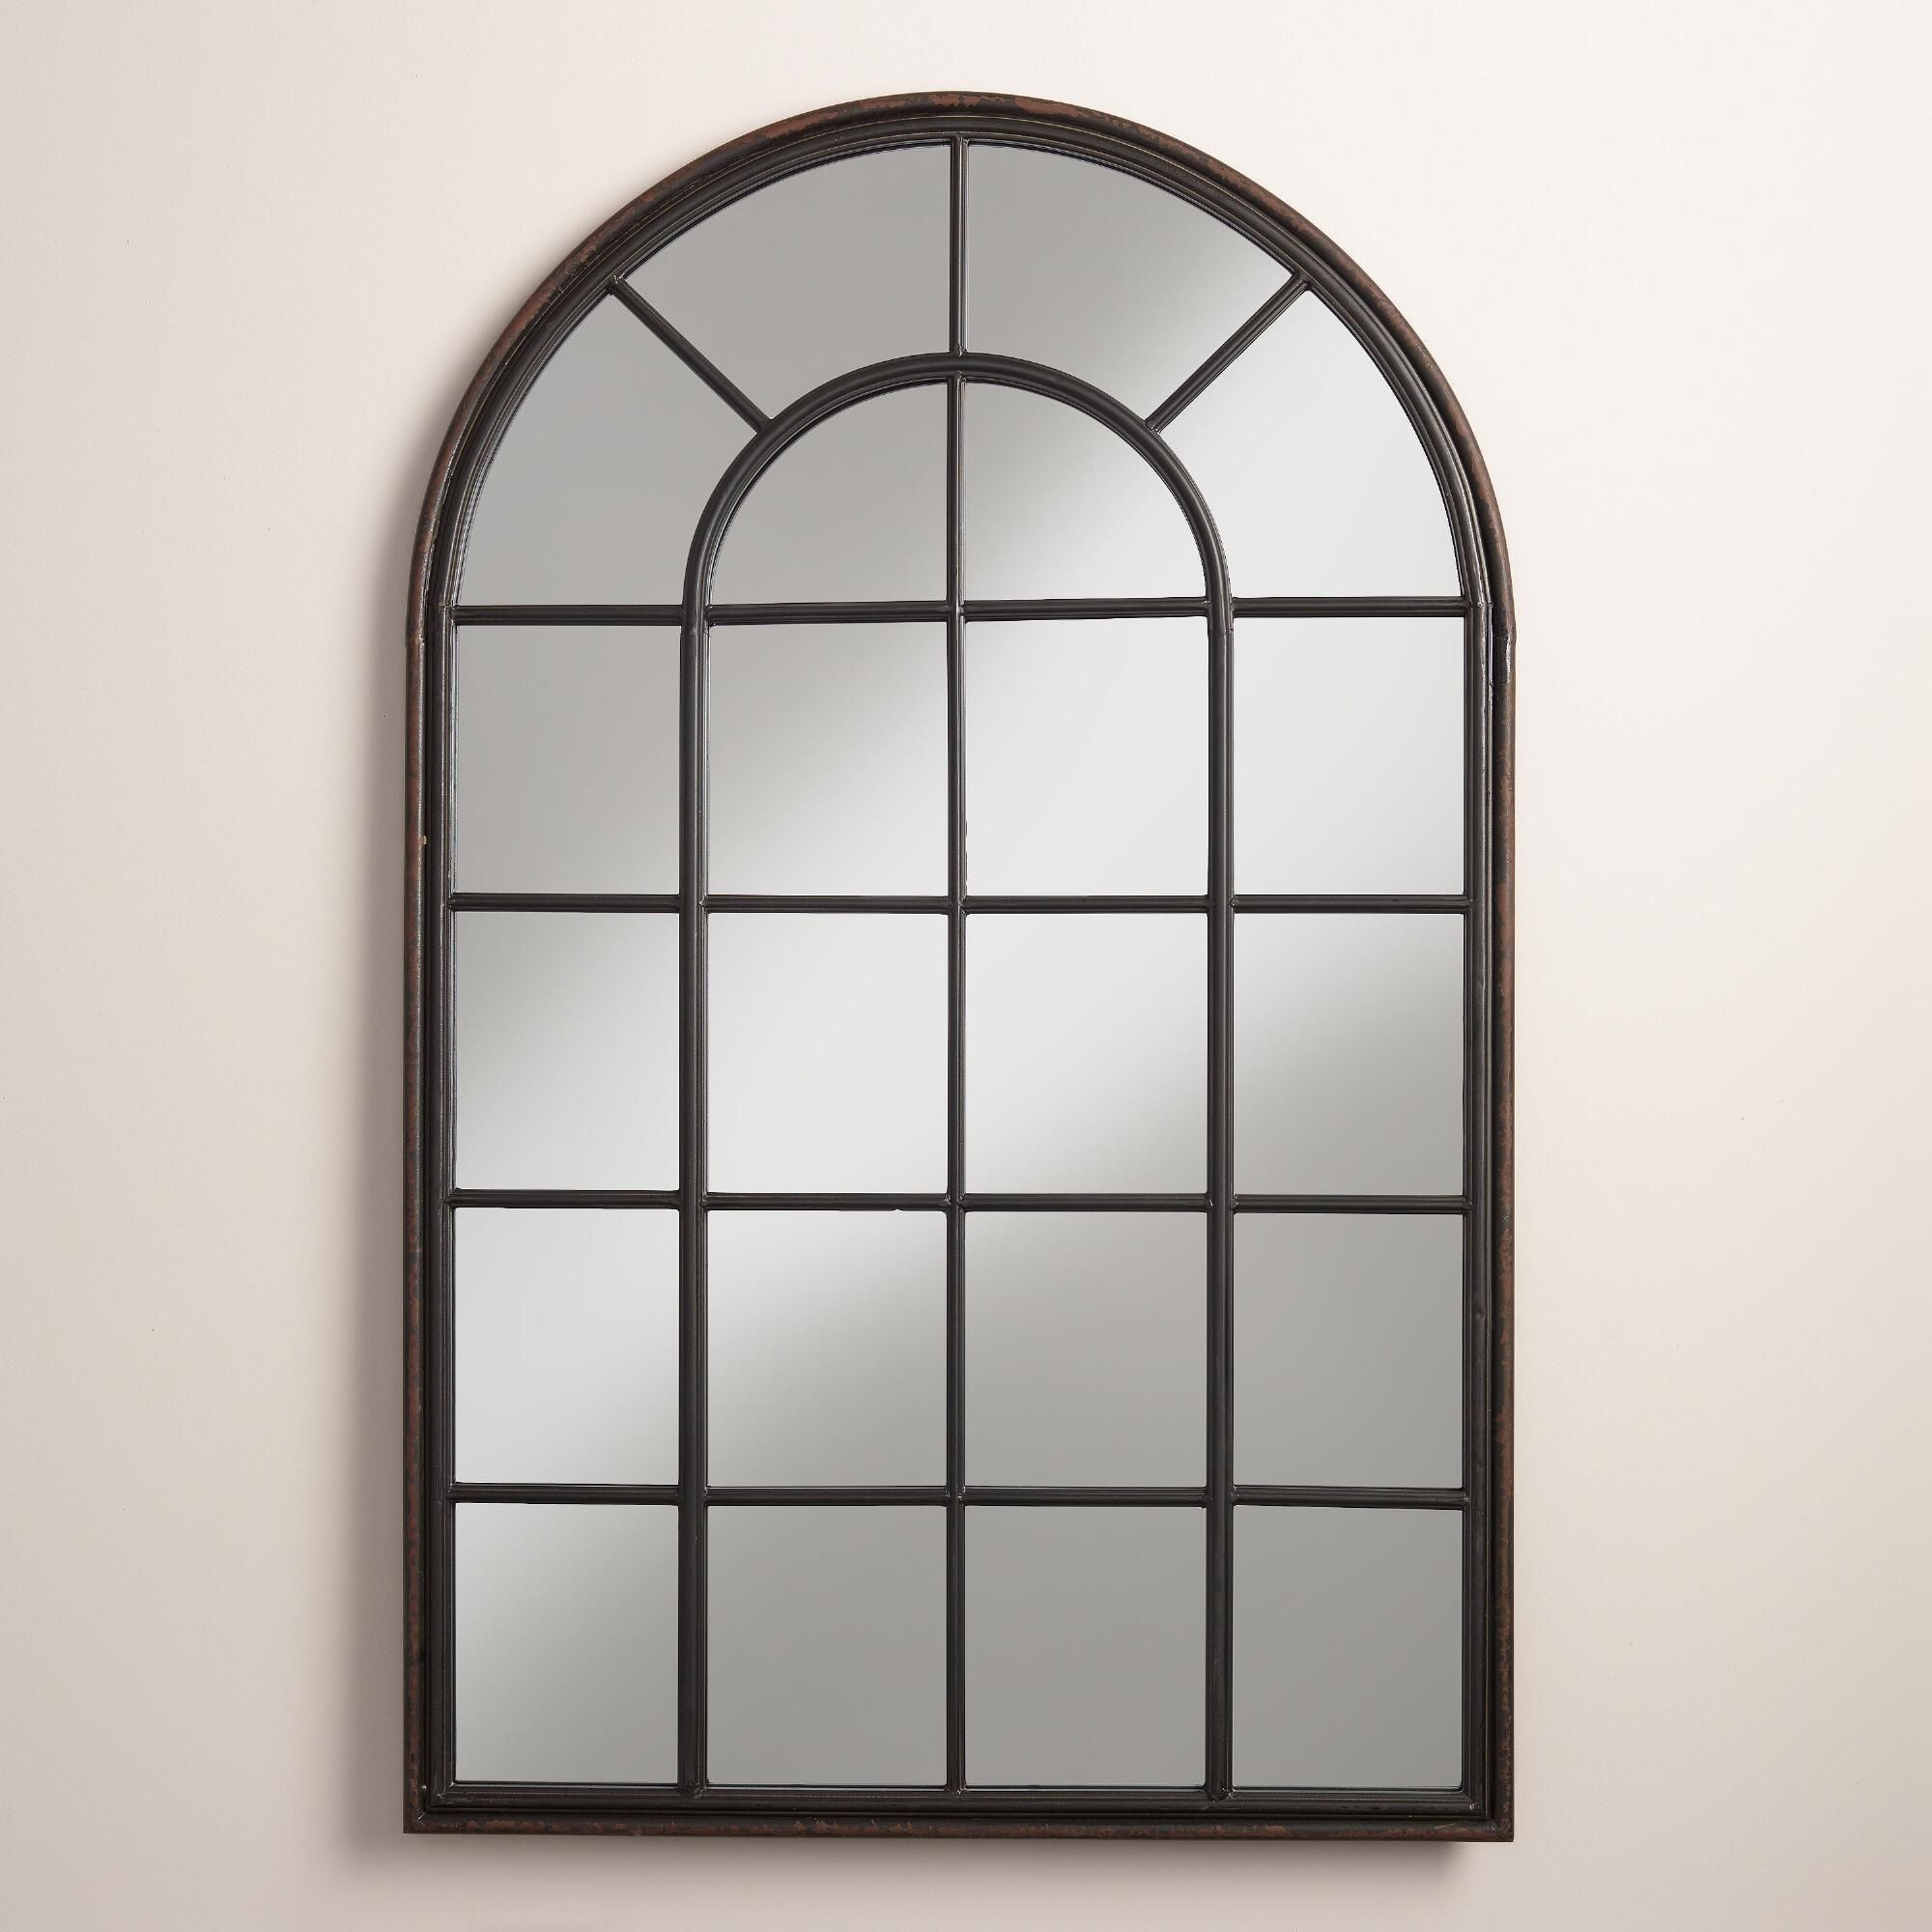 Our window-inspired iron mirror features a broad arch and ...